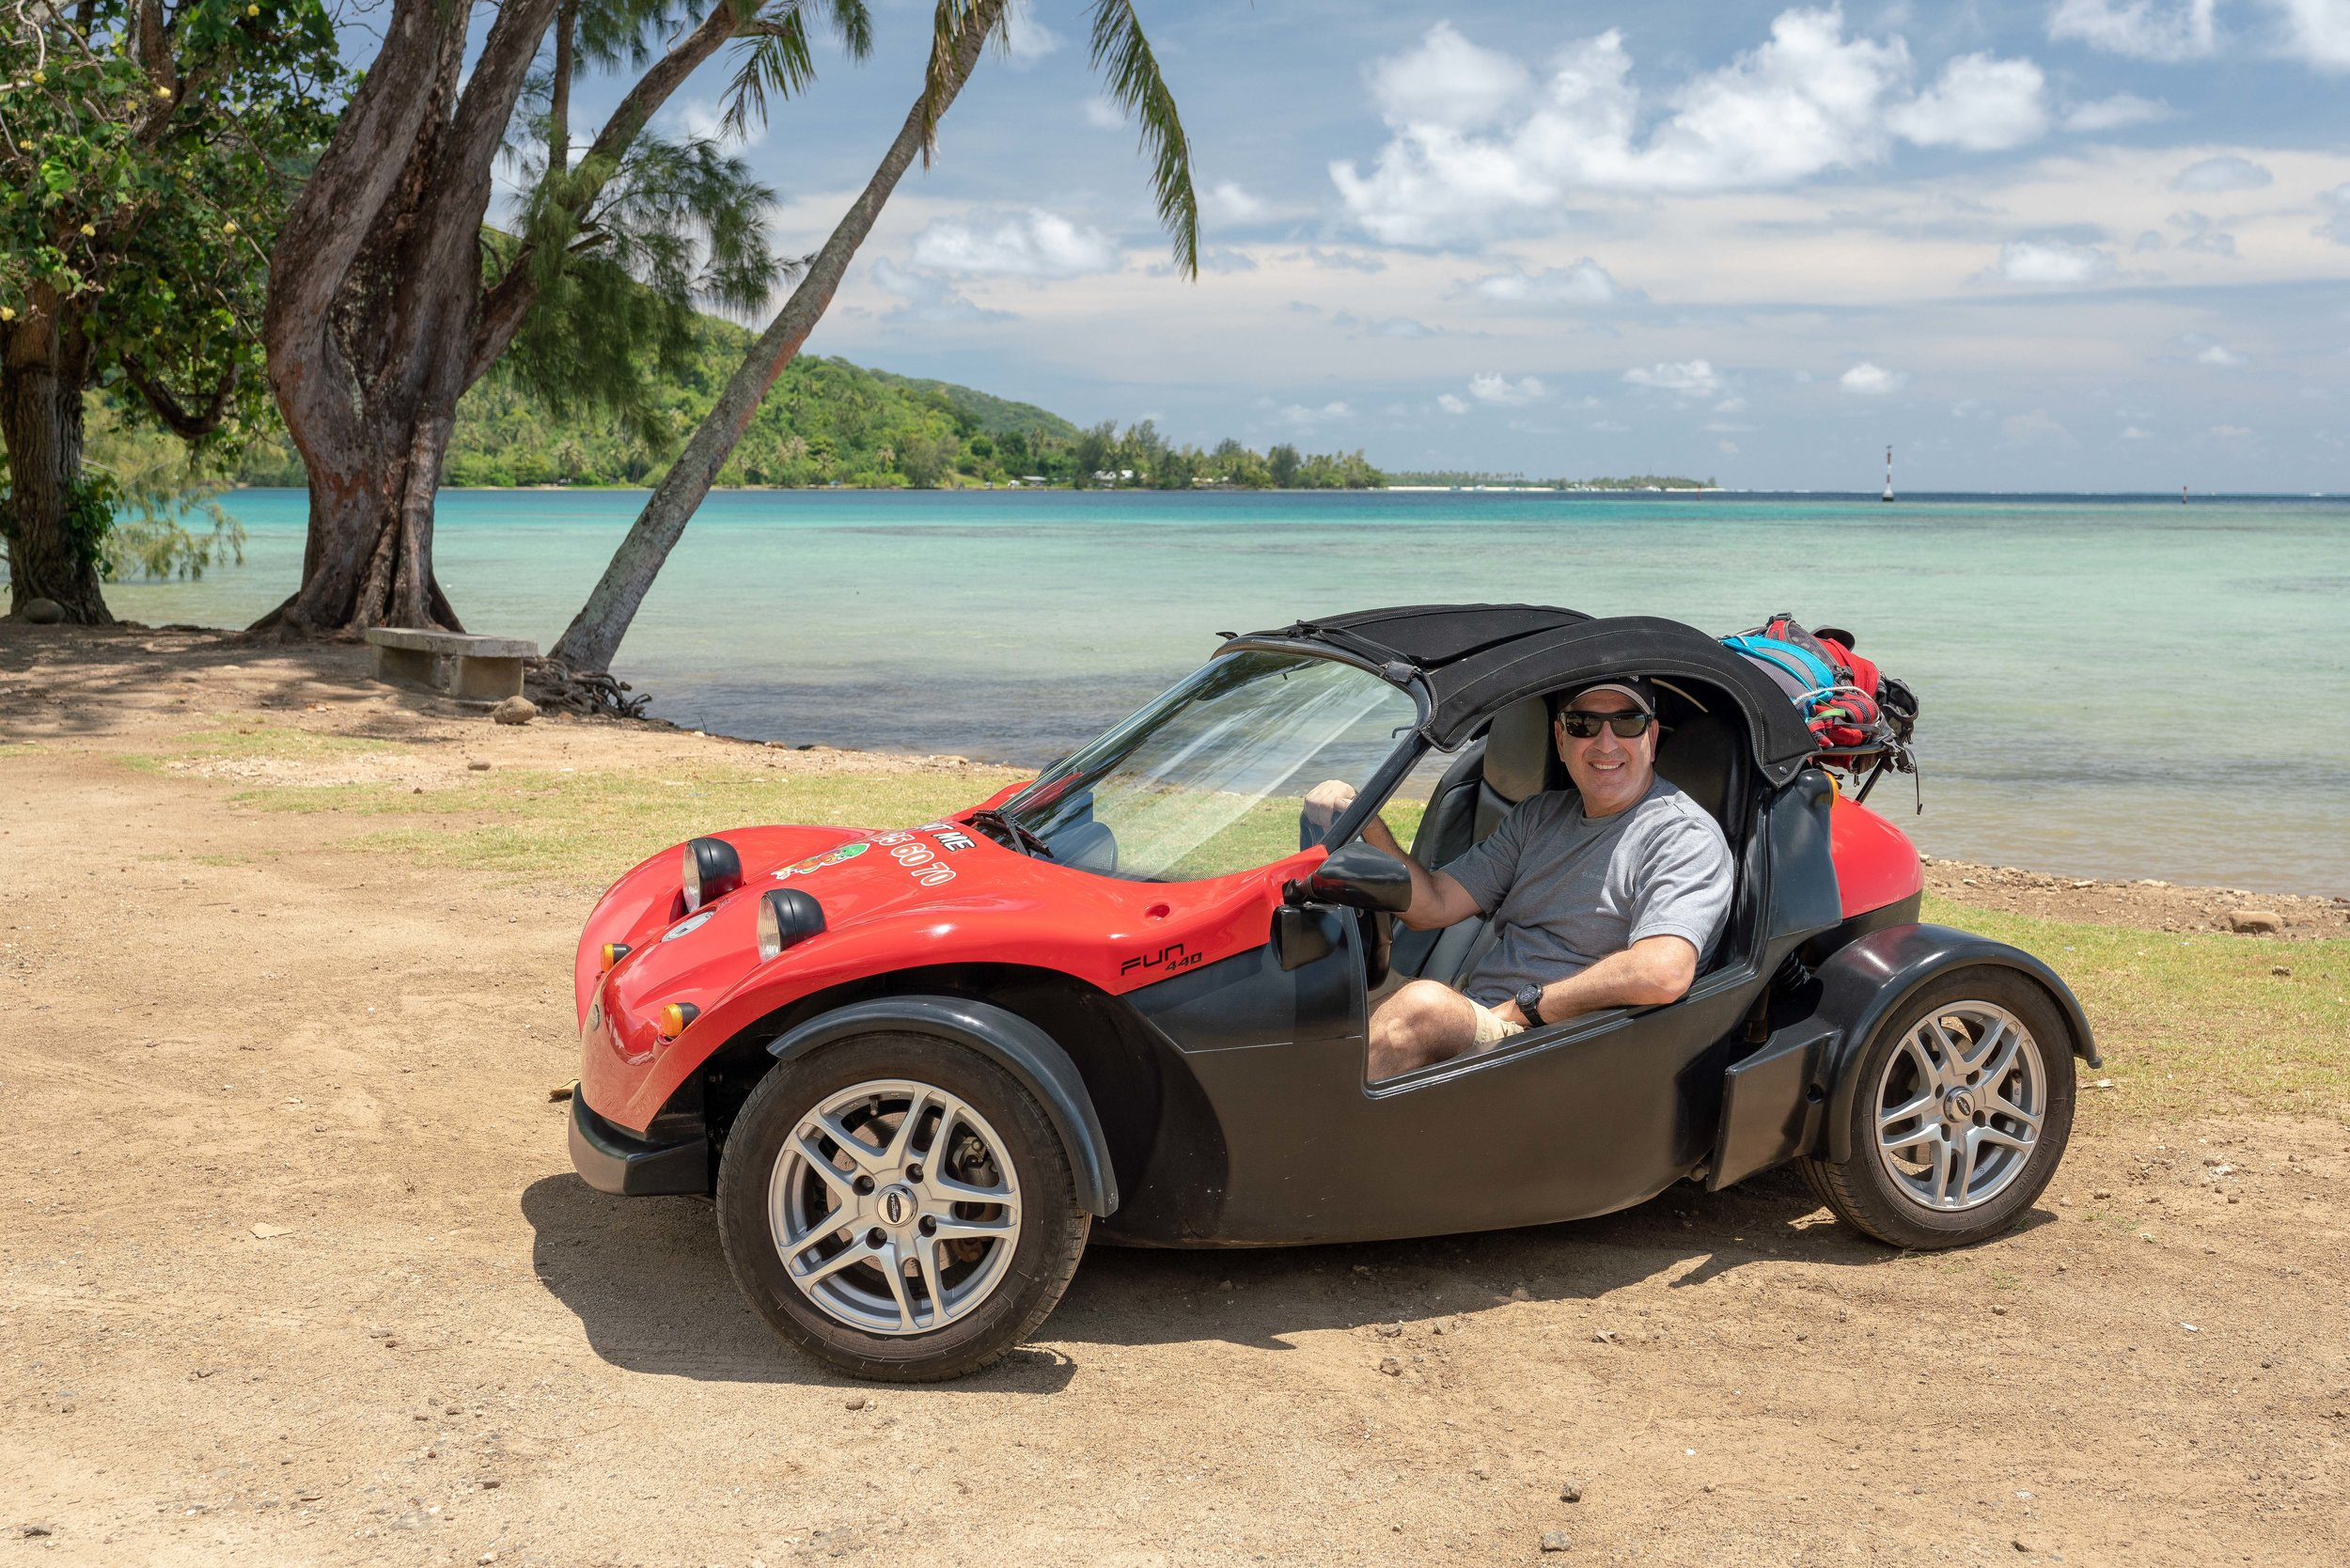 Rented a go cart and toured the entire island. Great fun!